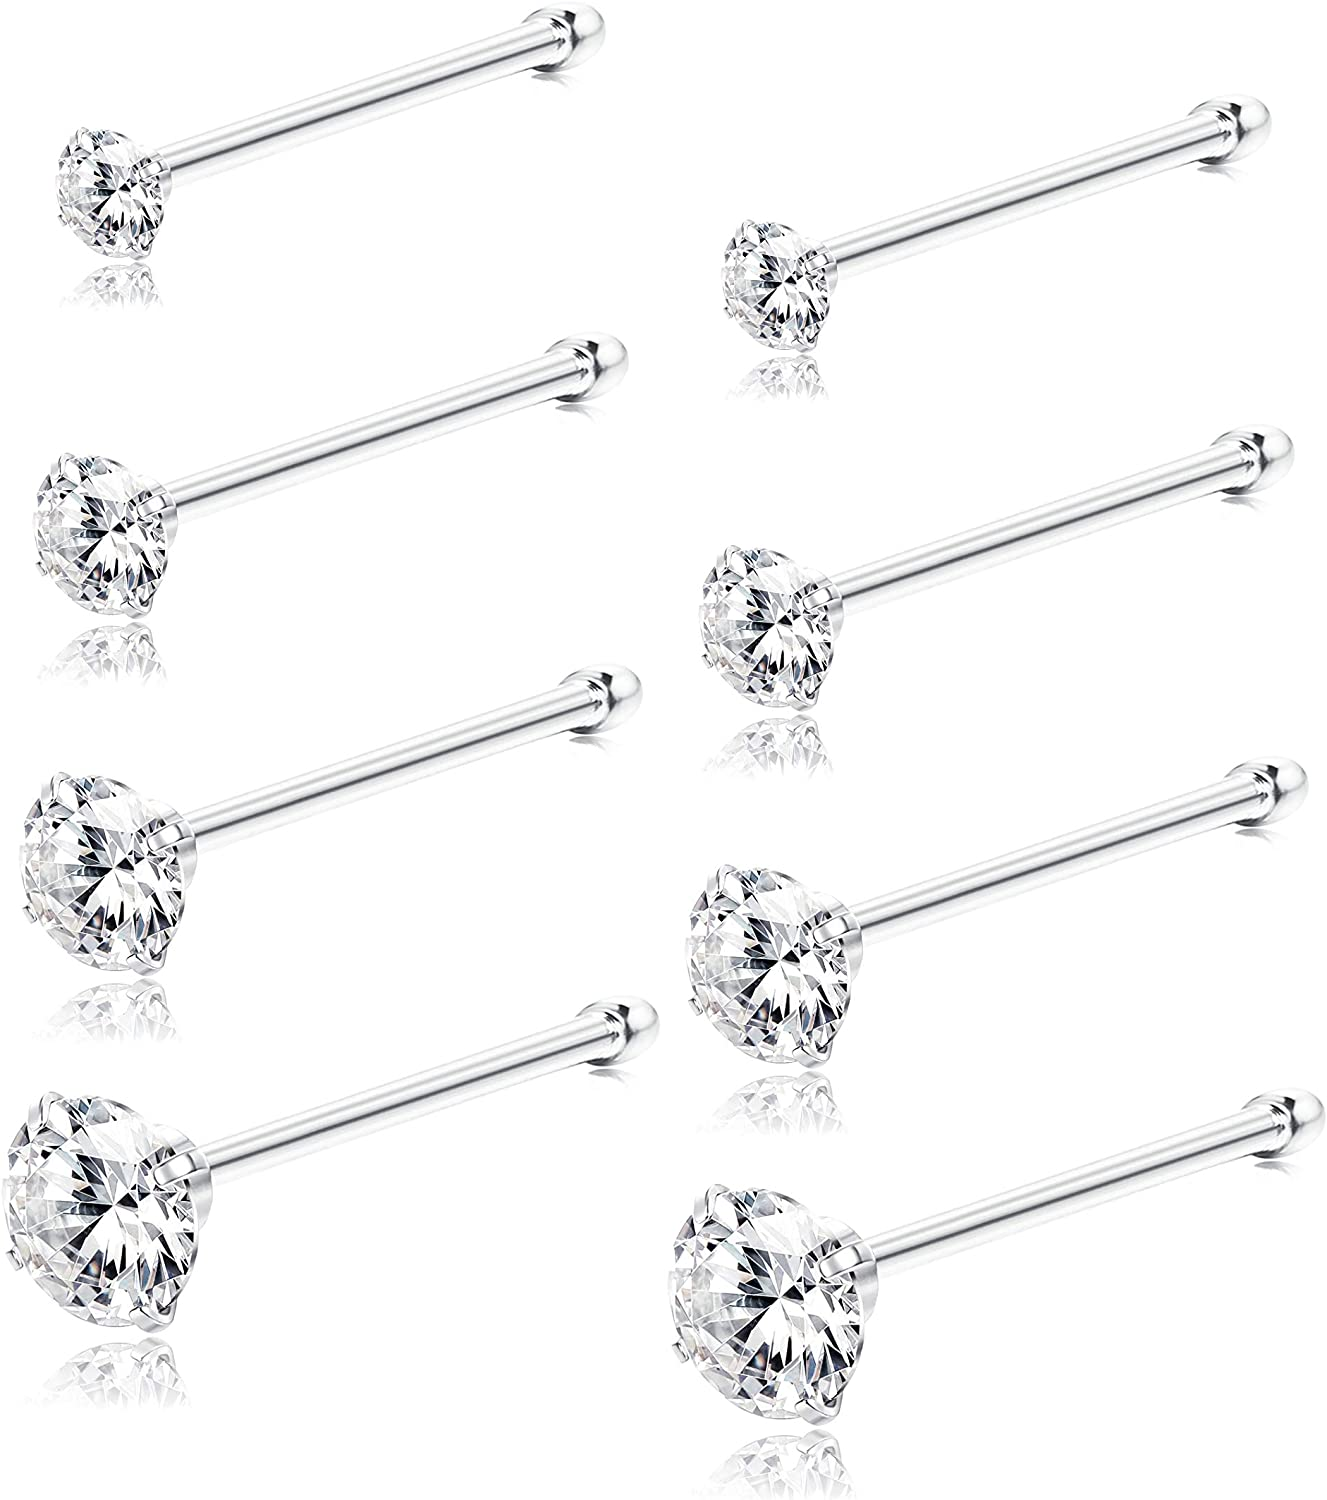 Nose stud,Piercing nose,Nostril earrings,Nostril jewelry,Nose ring,Opal 2 mm,Sterling silver,Gold Filled,Gold,22g,20g,18g,